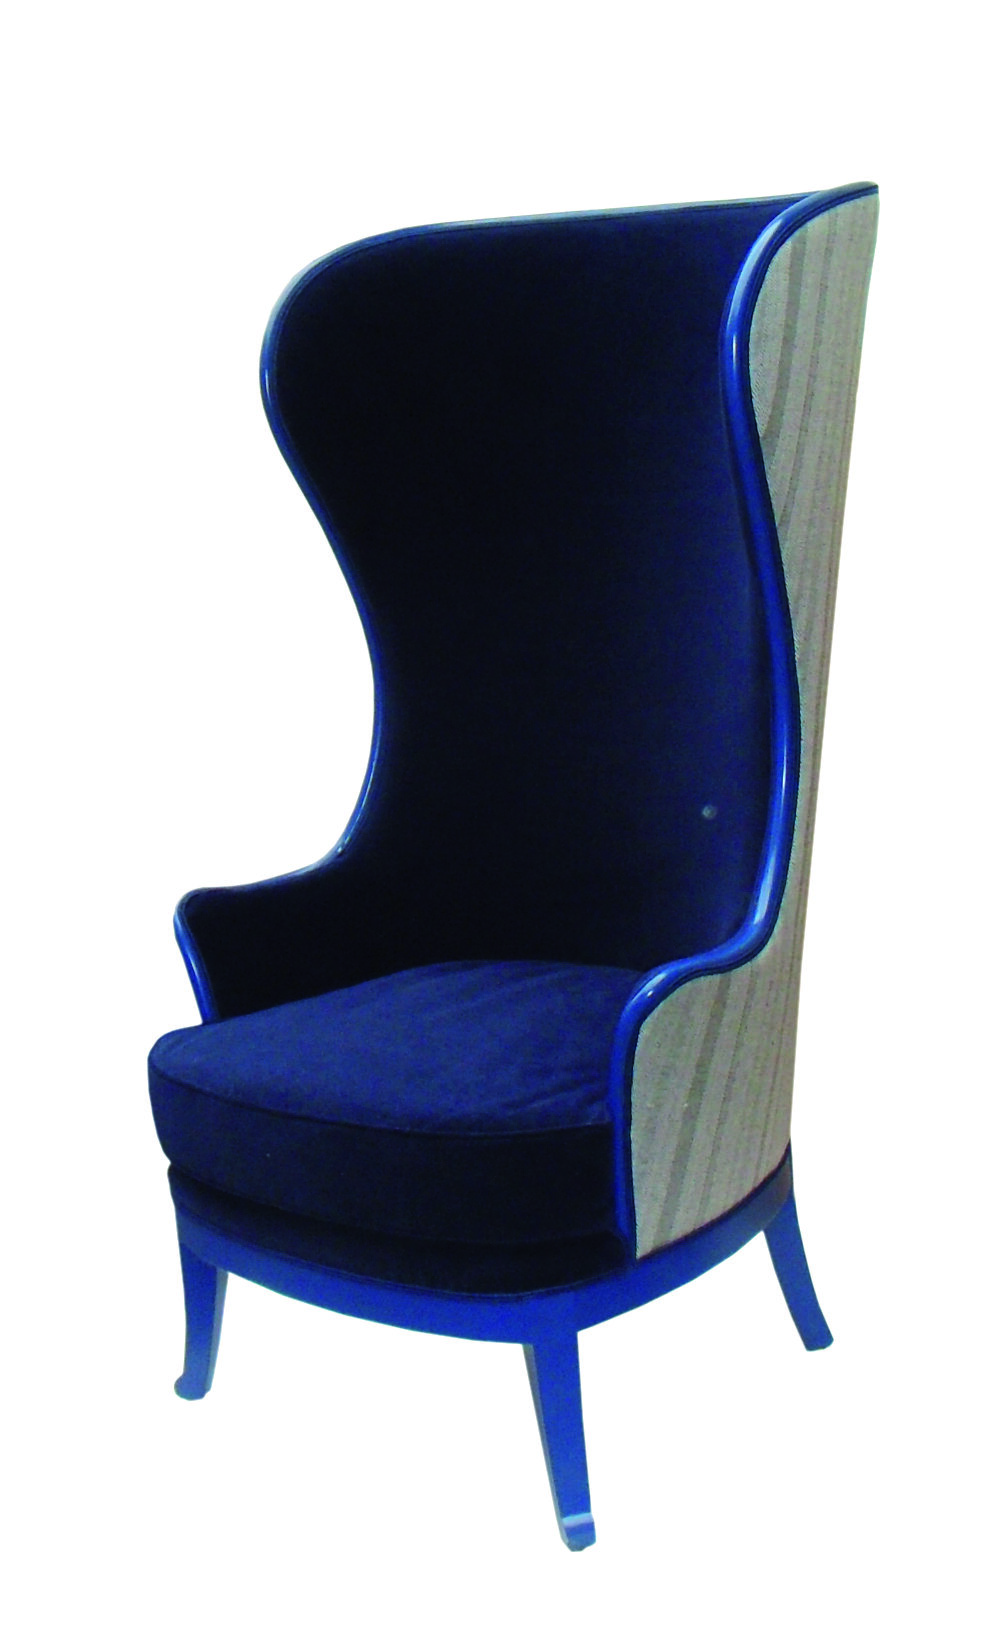 This very high backed chair is an unusual take on a wing chair, with flowing curved arms.